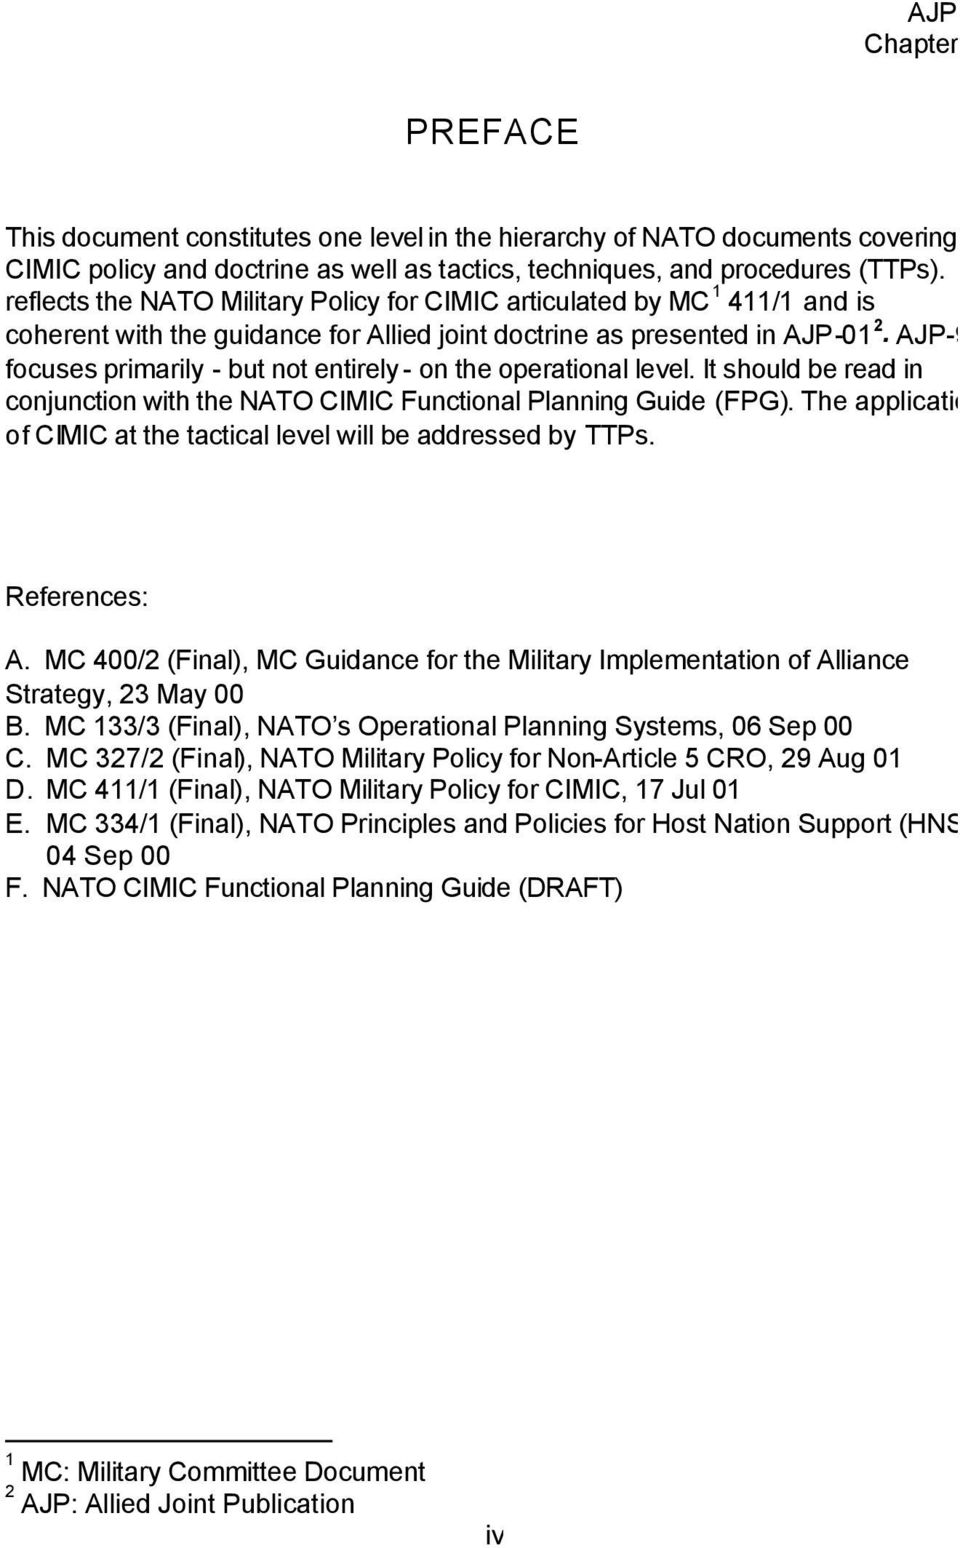 AJP-9 focuses primarily - but not entirely - on the operational level. It should be read in conjunction with the NATO CIMIC Functional Planning Guide (FPG).